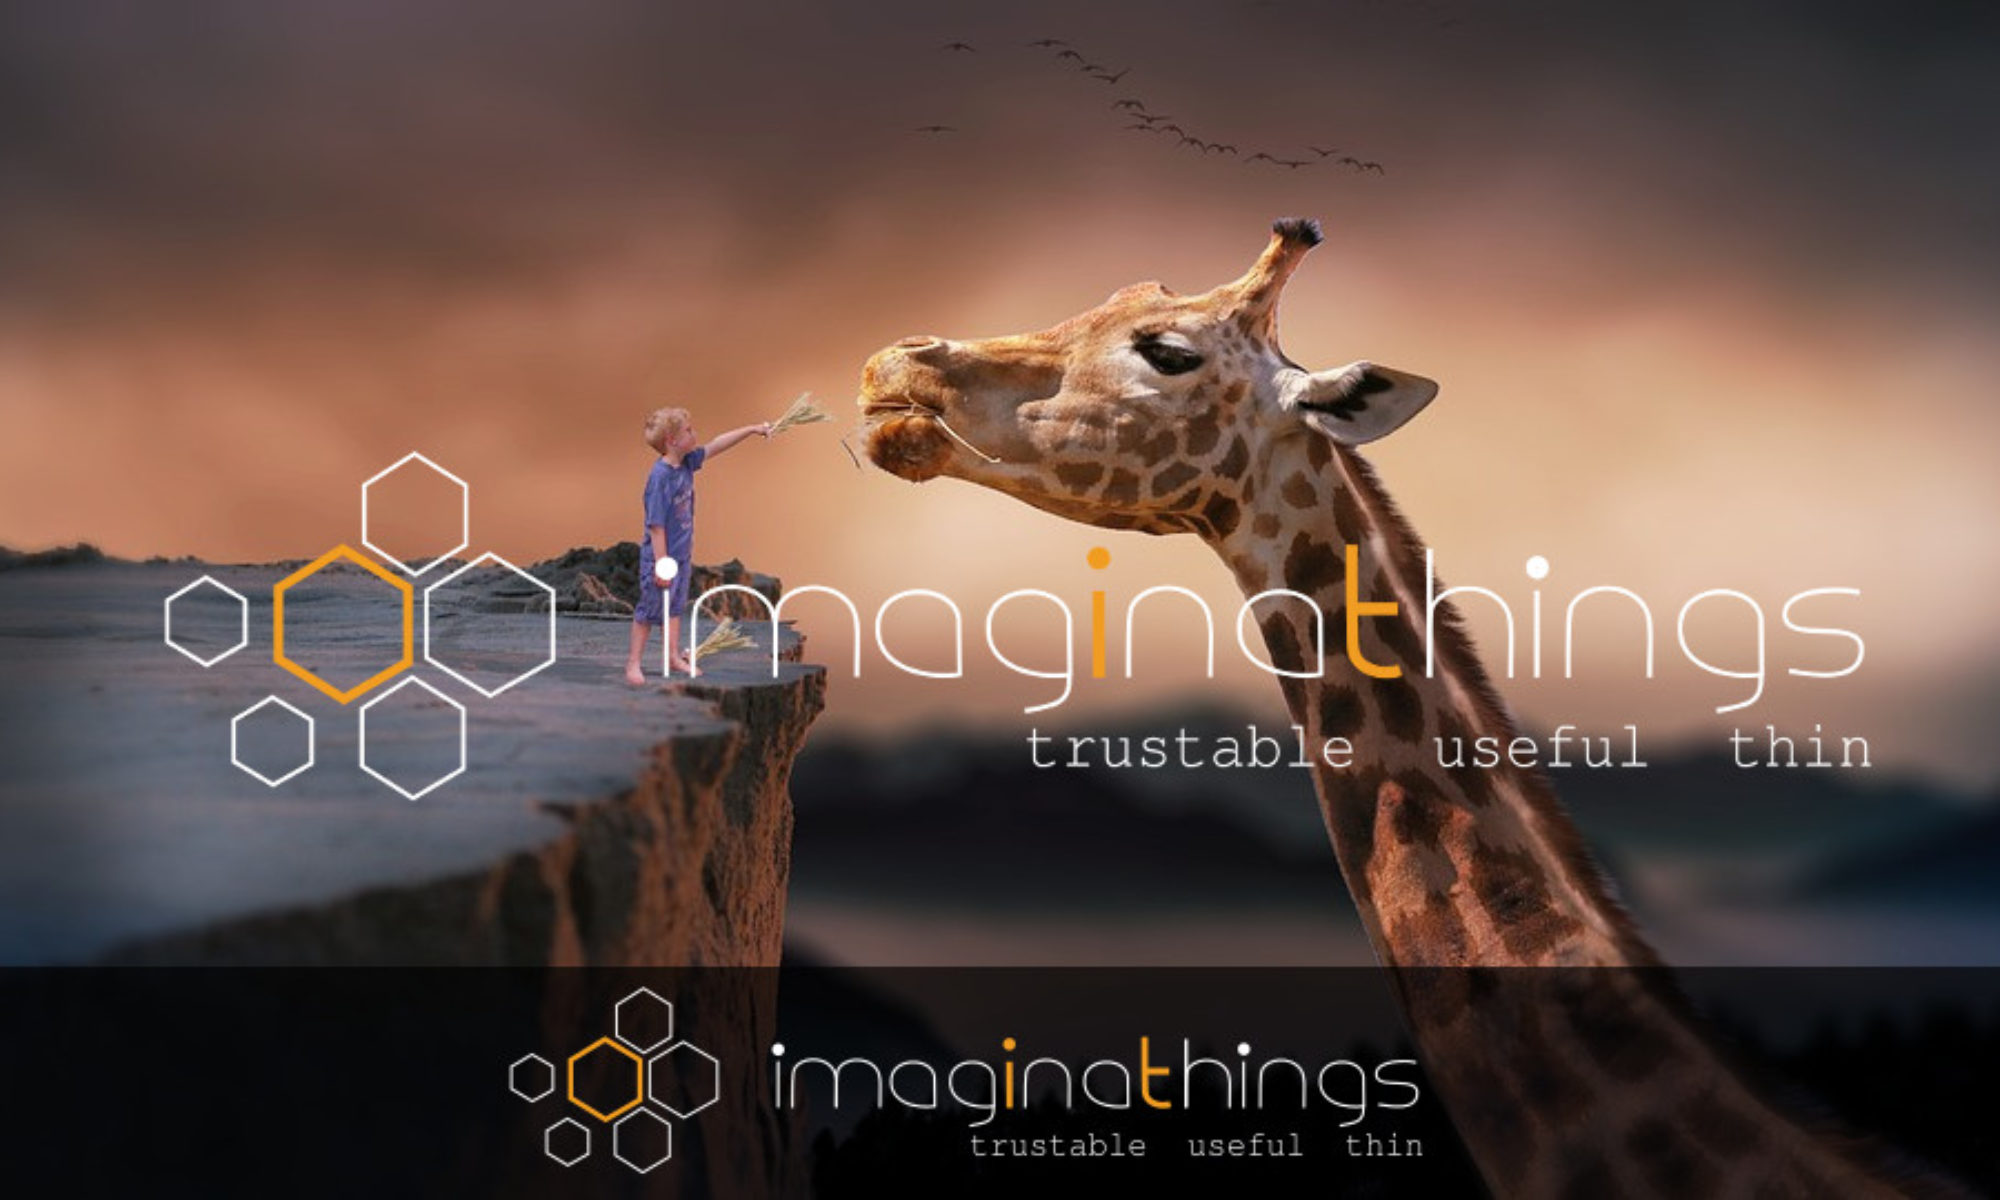 imaginathings